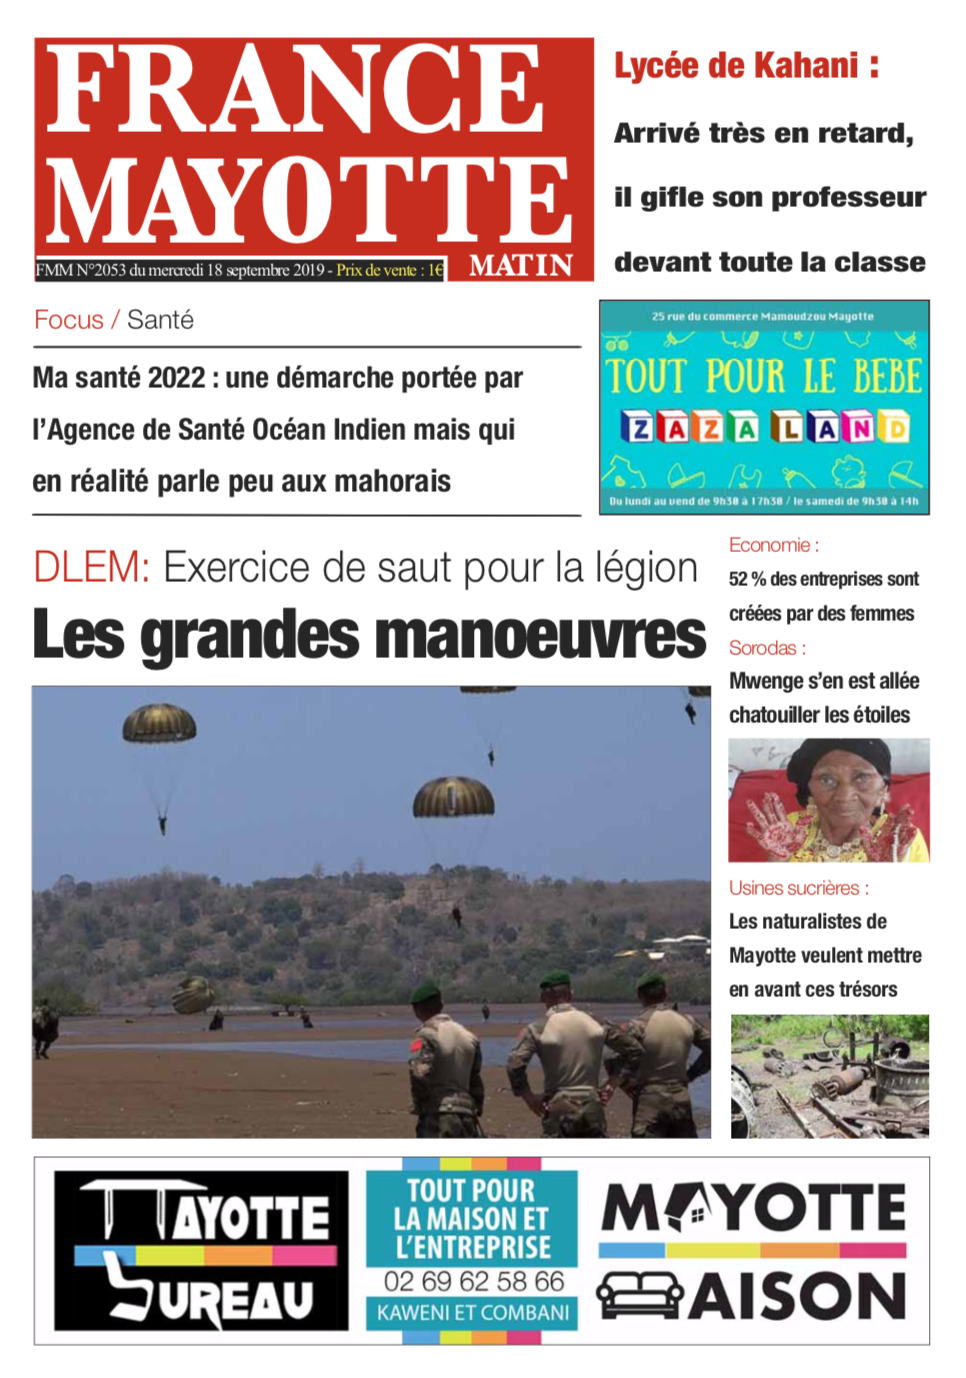 France Mayotte Mercredi 18 septembre 2019